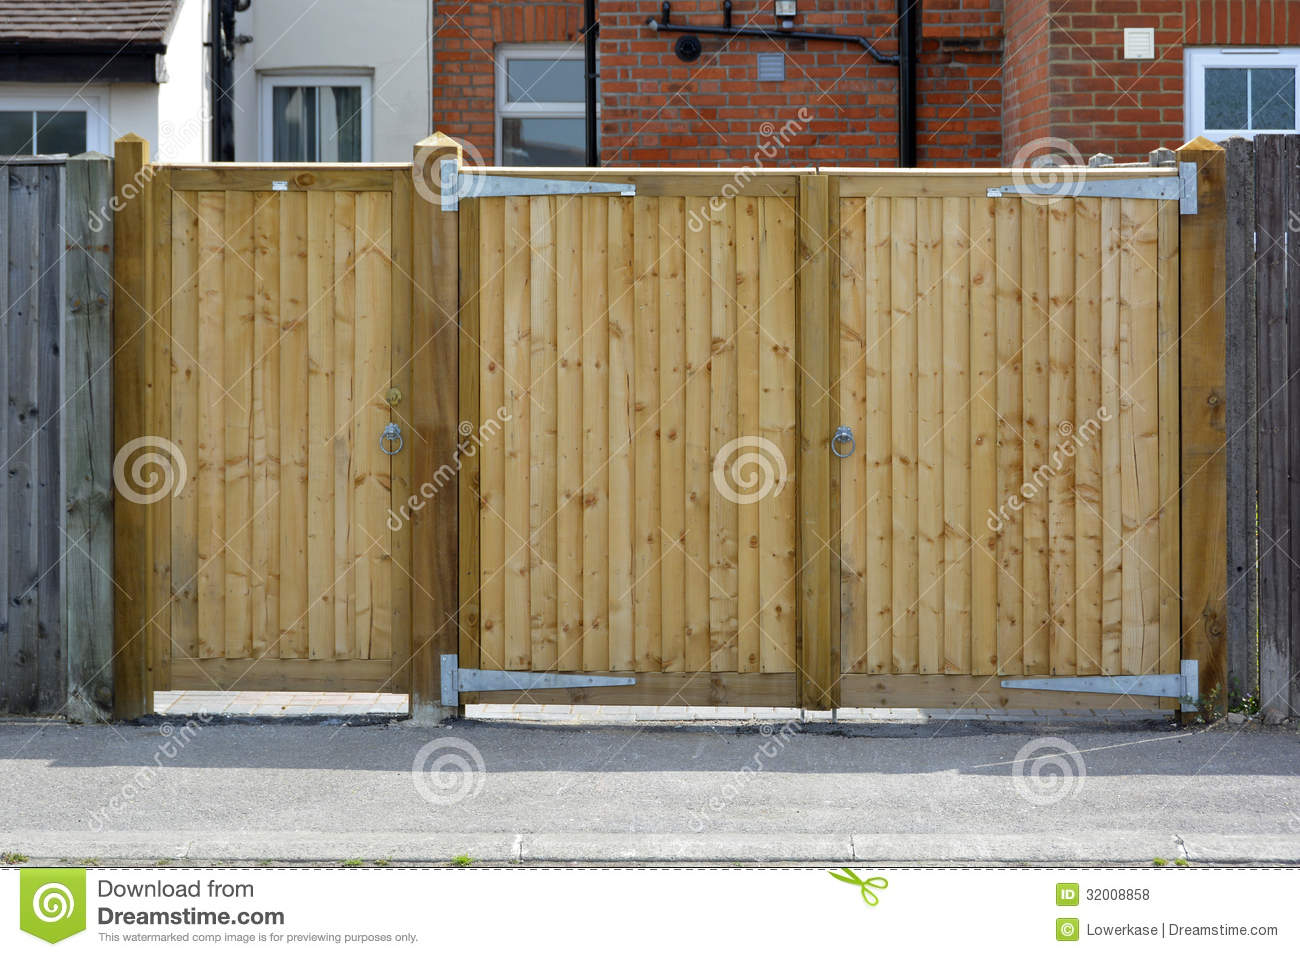 Pair Of Wooden Gates Stock Photo Image Of Closed High